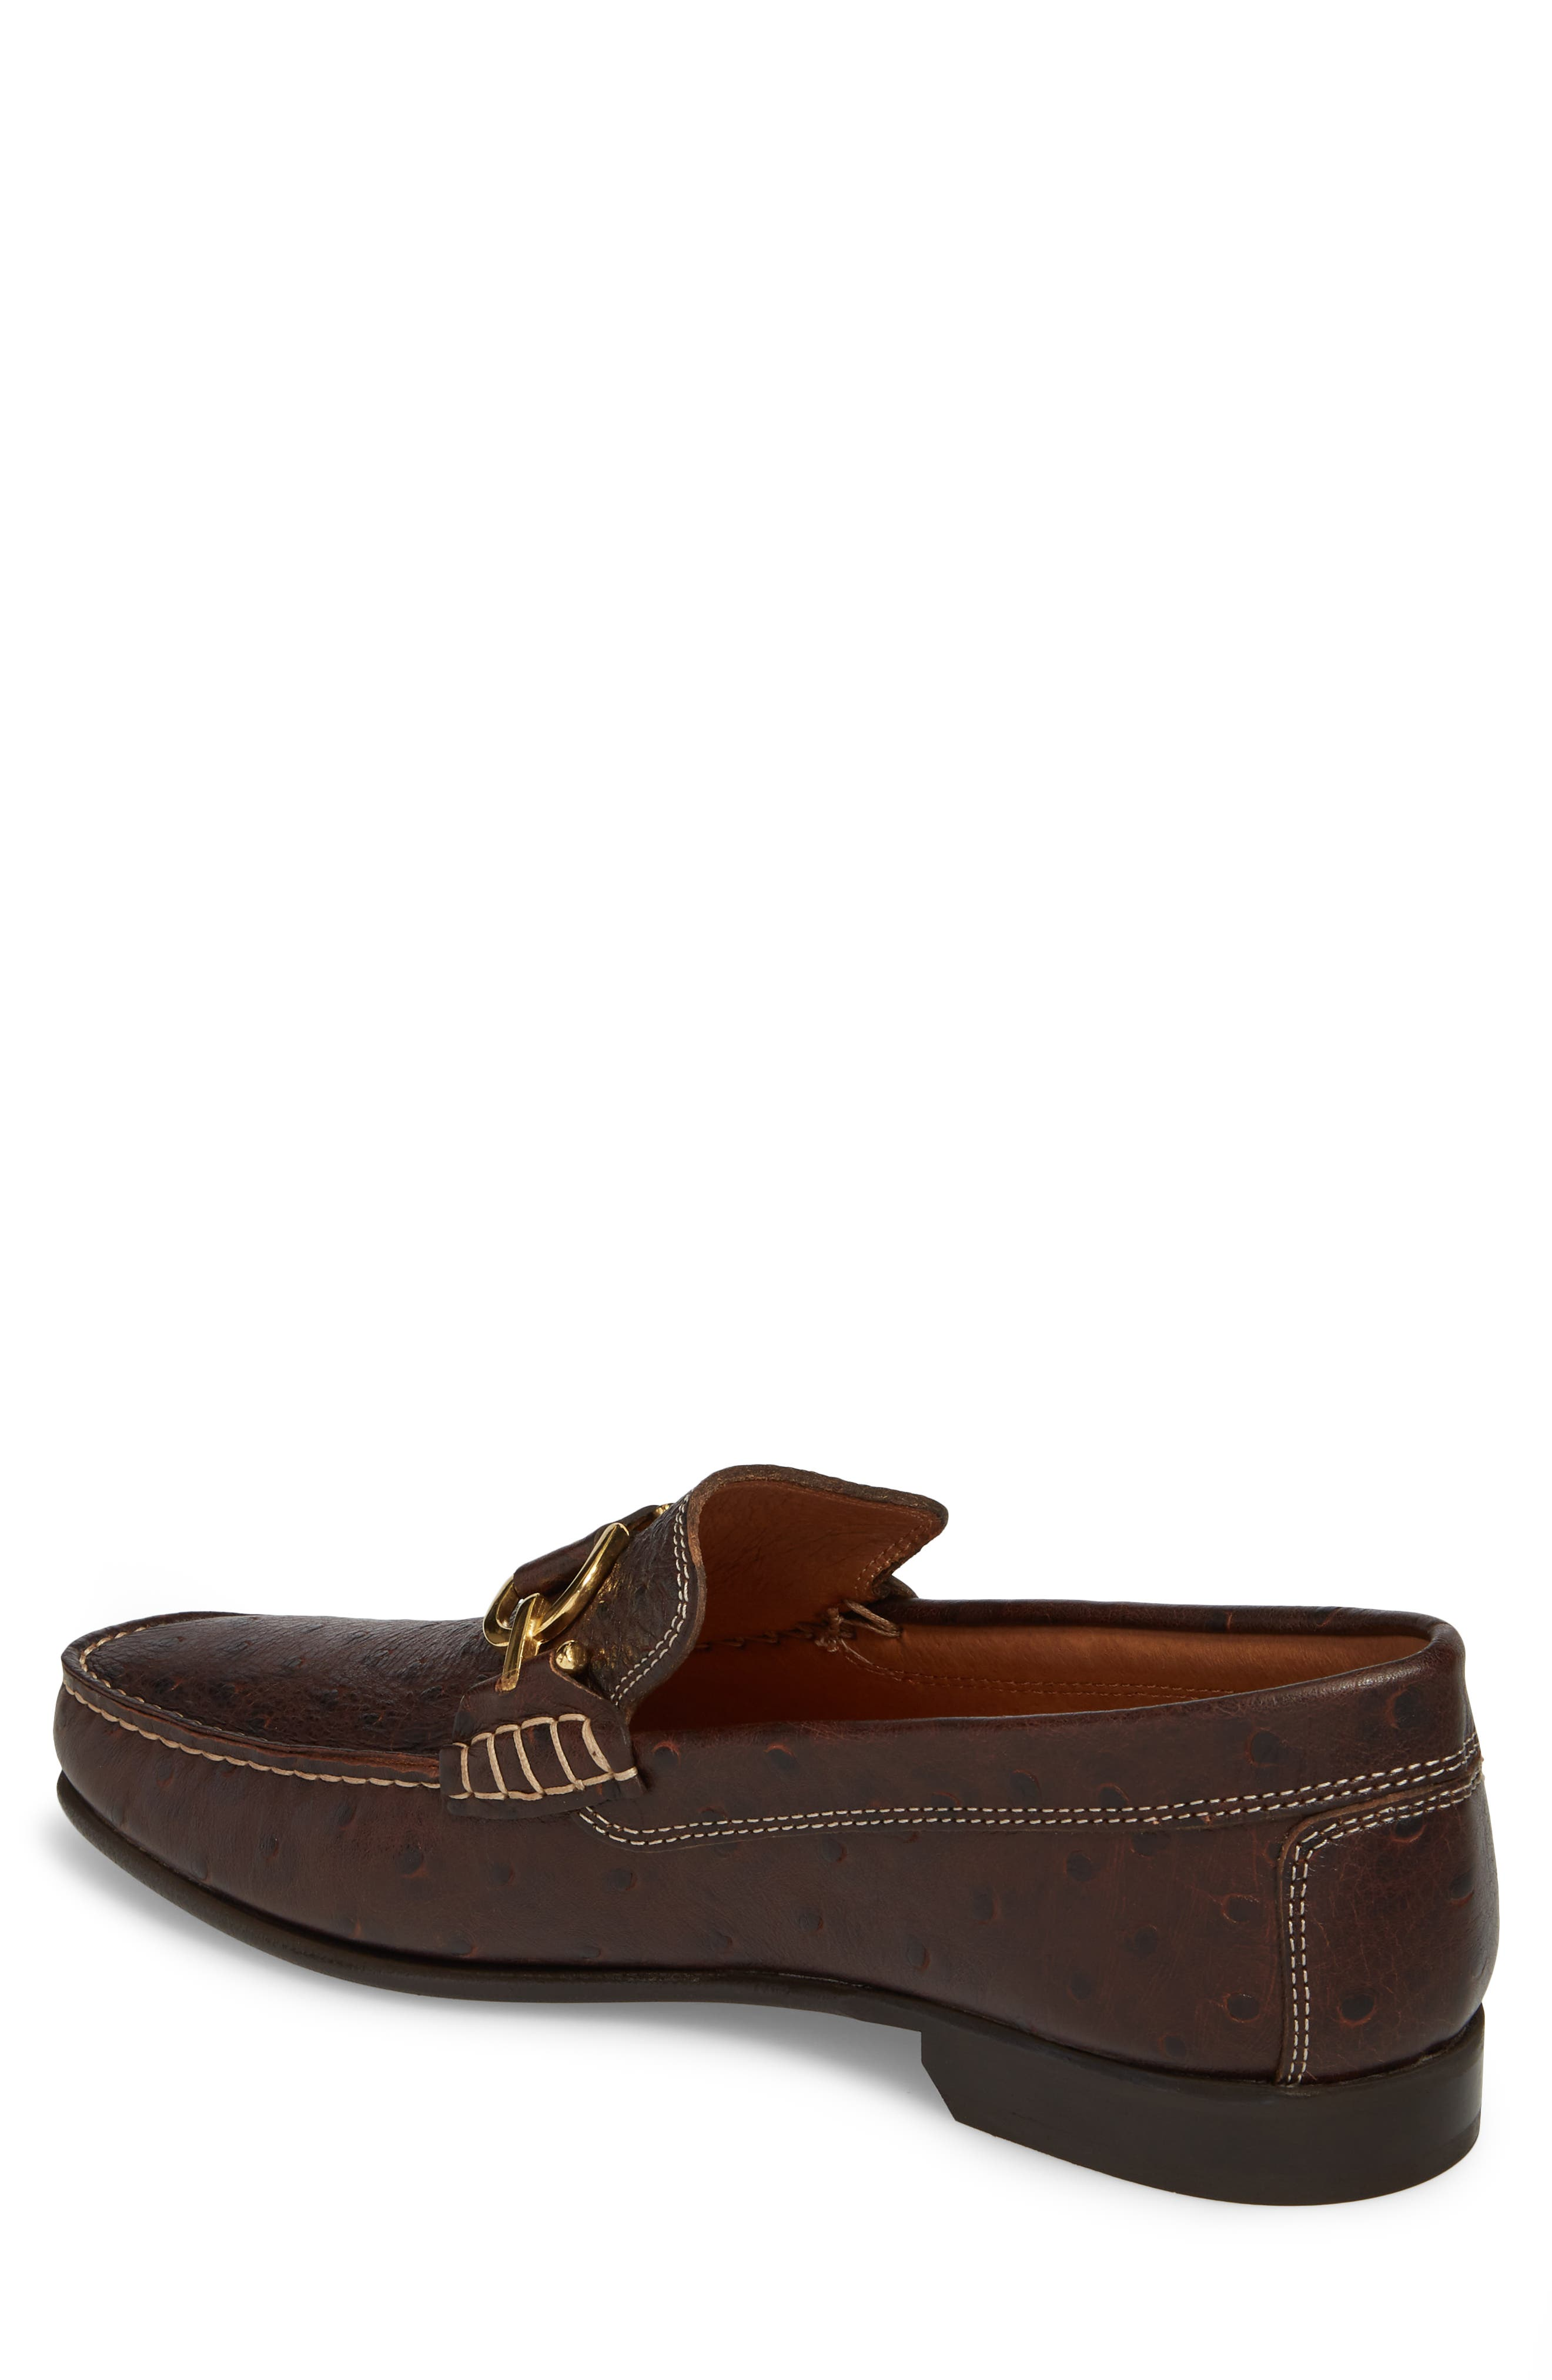 Dacio Square-Toe Loafer,                             Alternate thumbnail 2, color,                             BROWN LEATHER